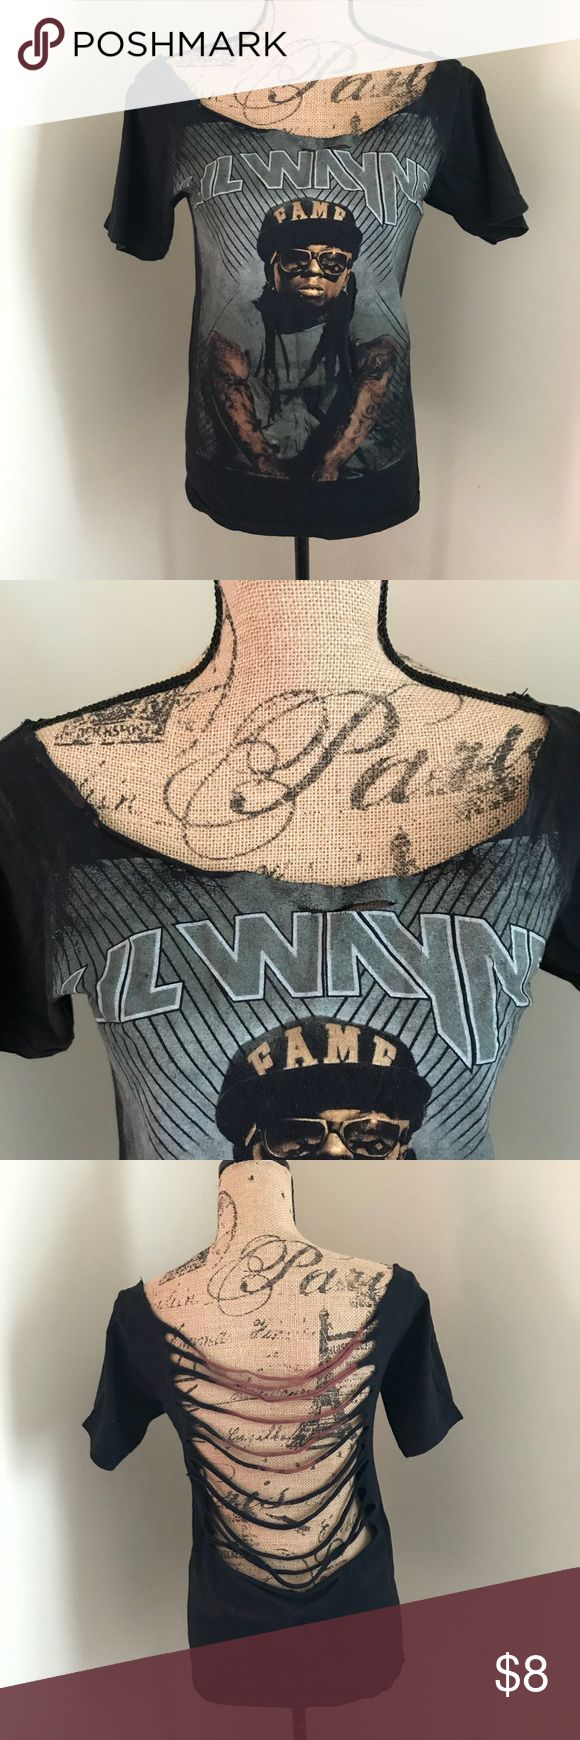 Cut up Lil Wayne Tee Lil Wayne t-shirt with open neck and back cut up design Tops Tees - Short Sleeve